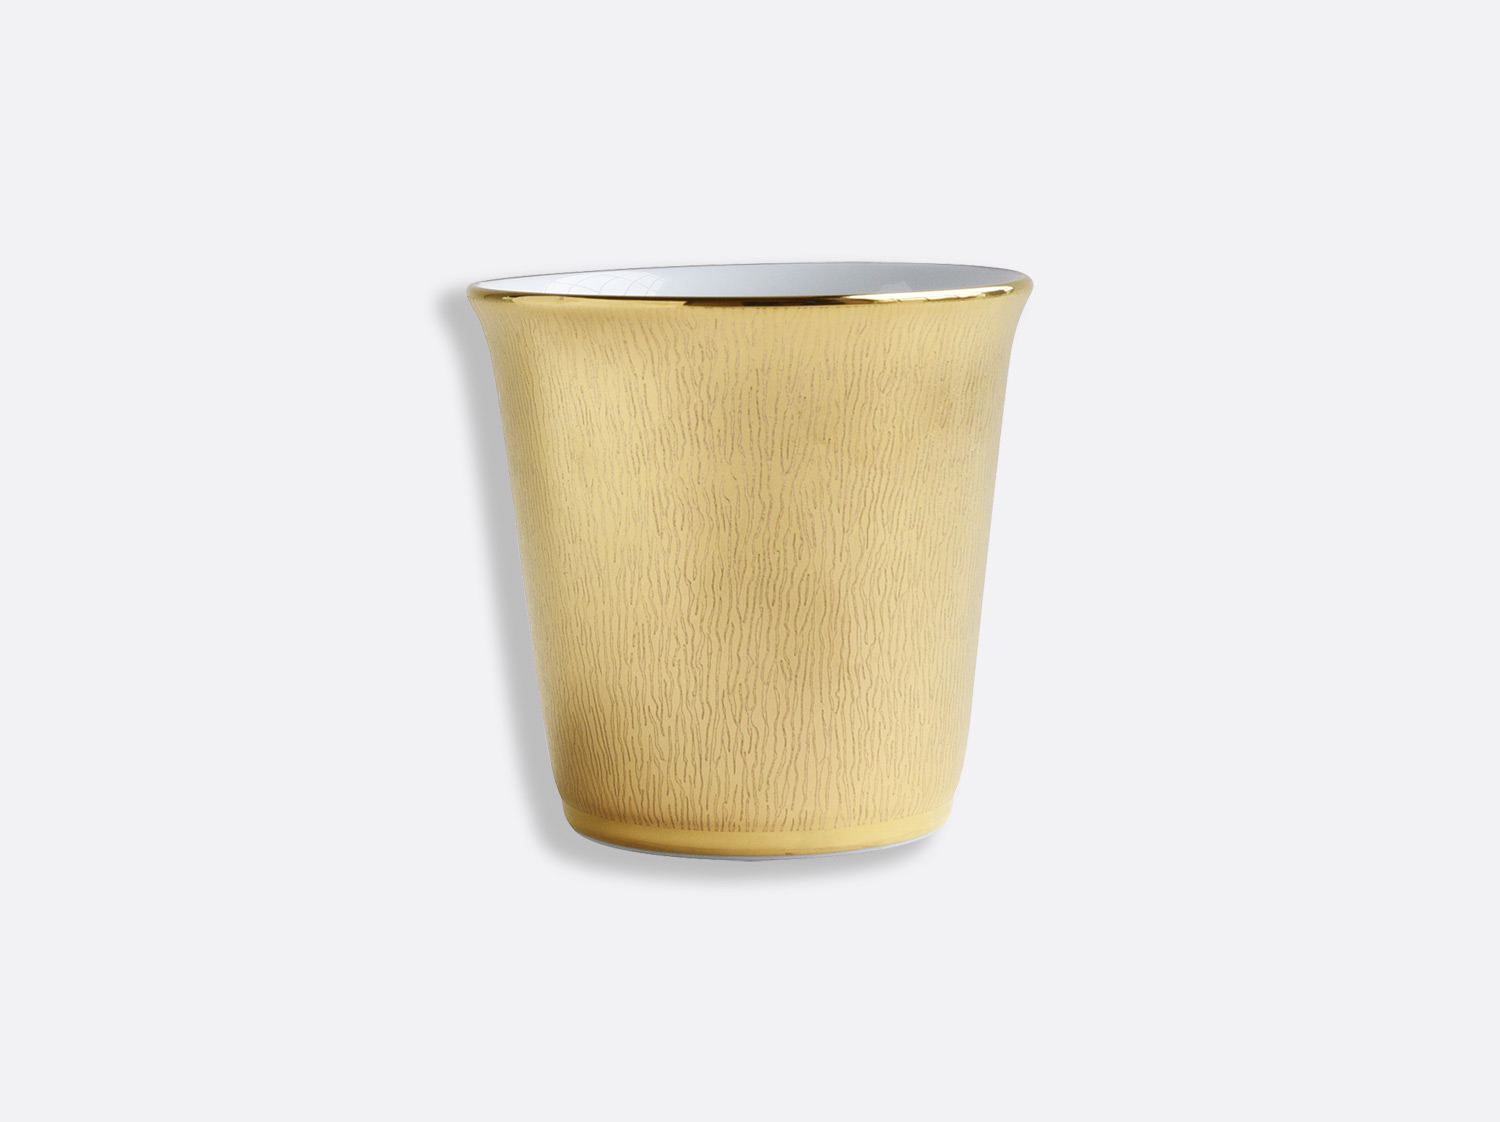 Pot 9 cm + bougie parfumée 200g en porcelaine de la collection Dune or Bernardaud